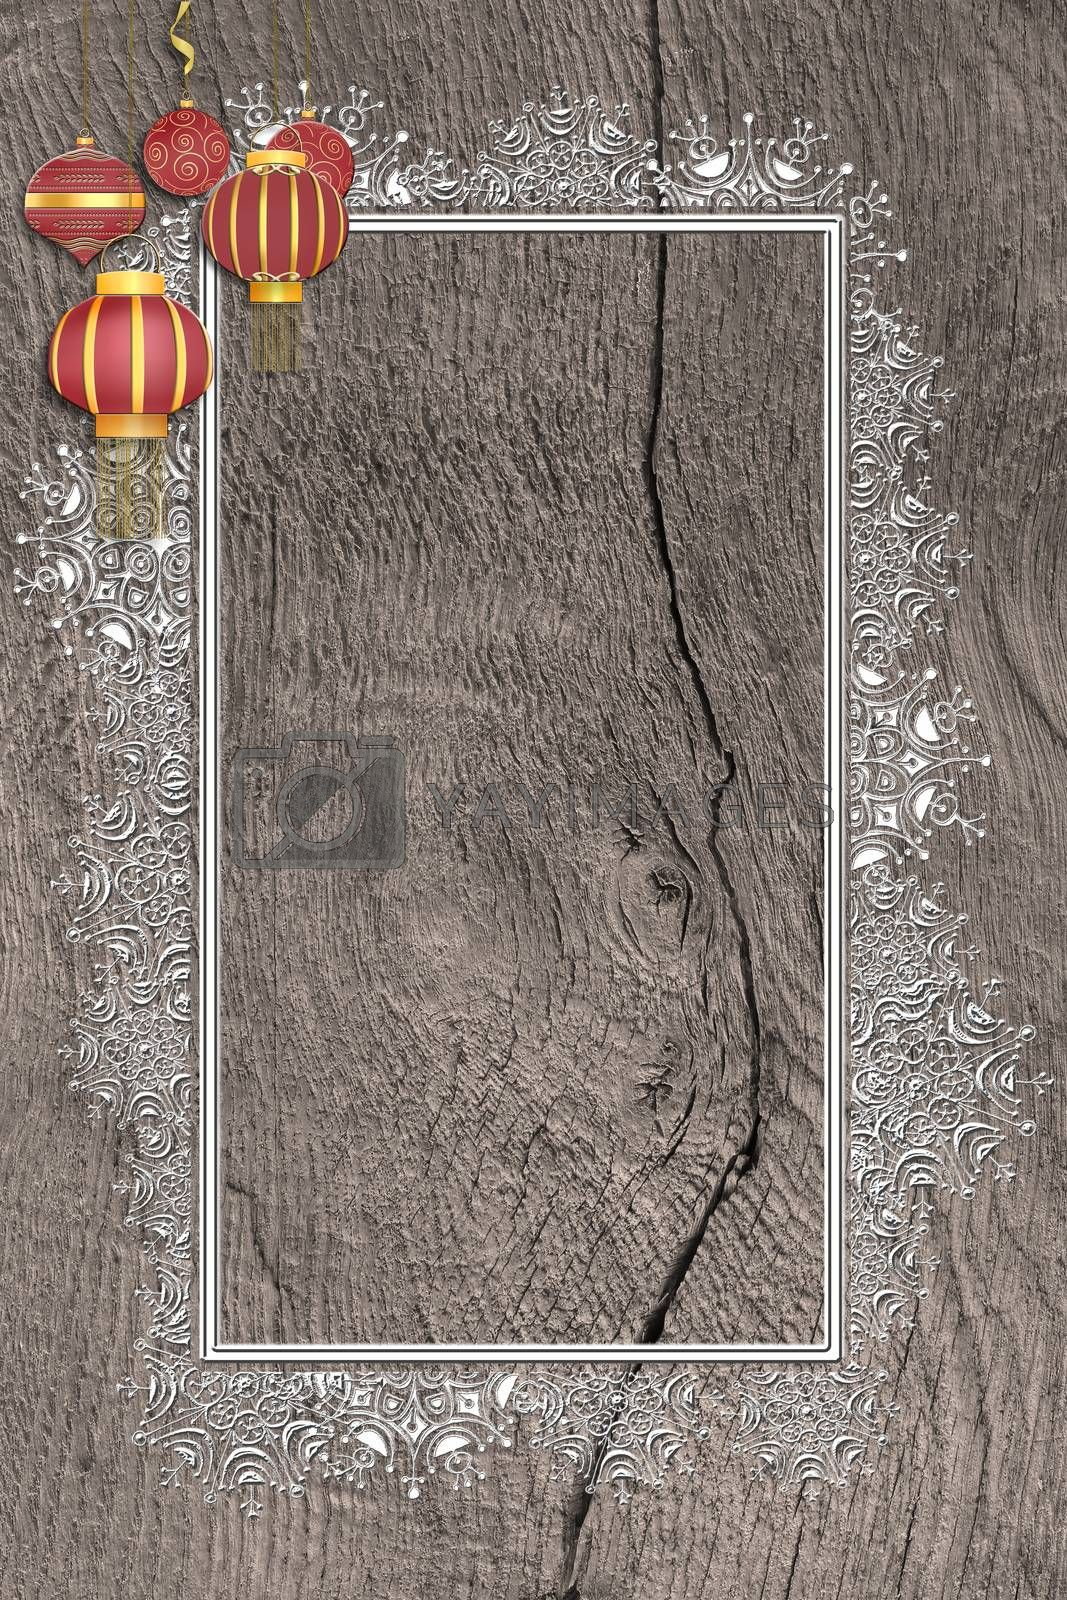 Christmas 2021 New Year grunge wooden background with silver border of snowflakes and hanging red Christmas balls with gold ornament. Mock up, place for text, menu. Vertical. Flat lay. 3D illustration